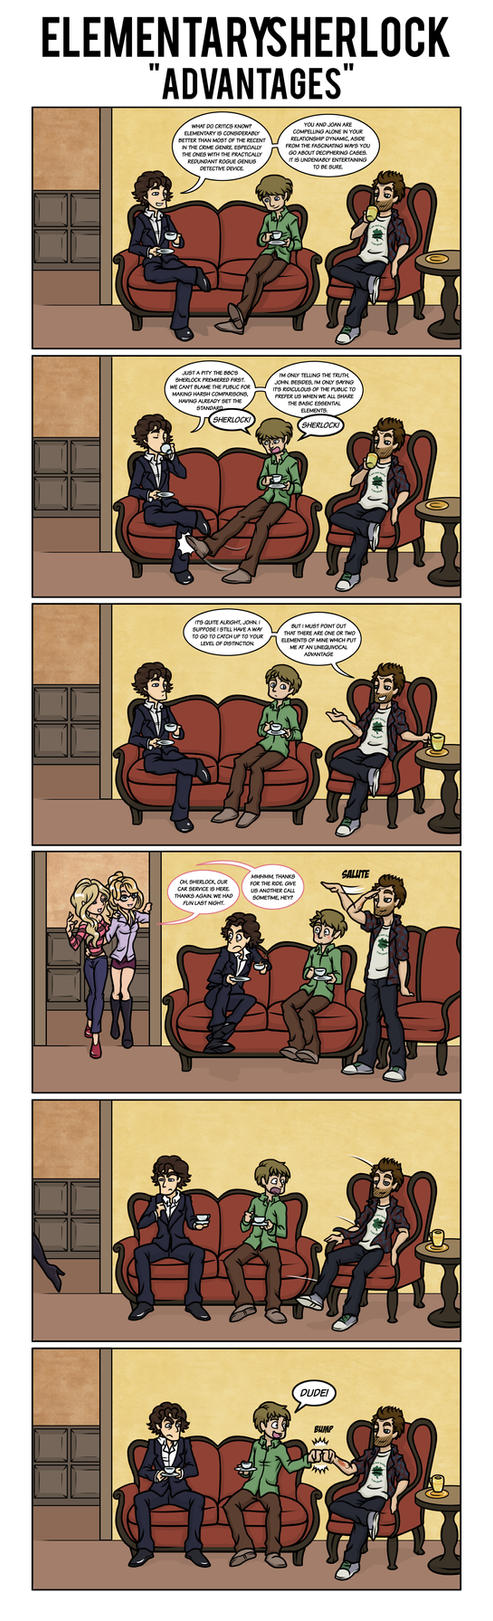 Elementary/Sherlock Advantages by maryfgr23